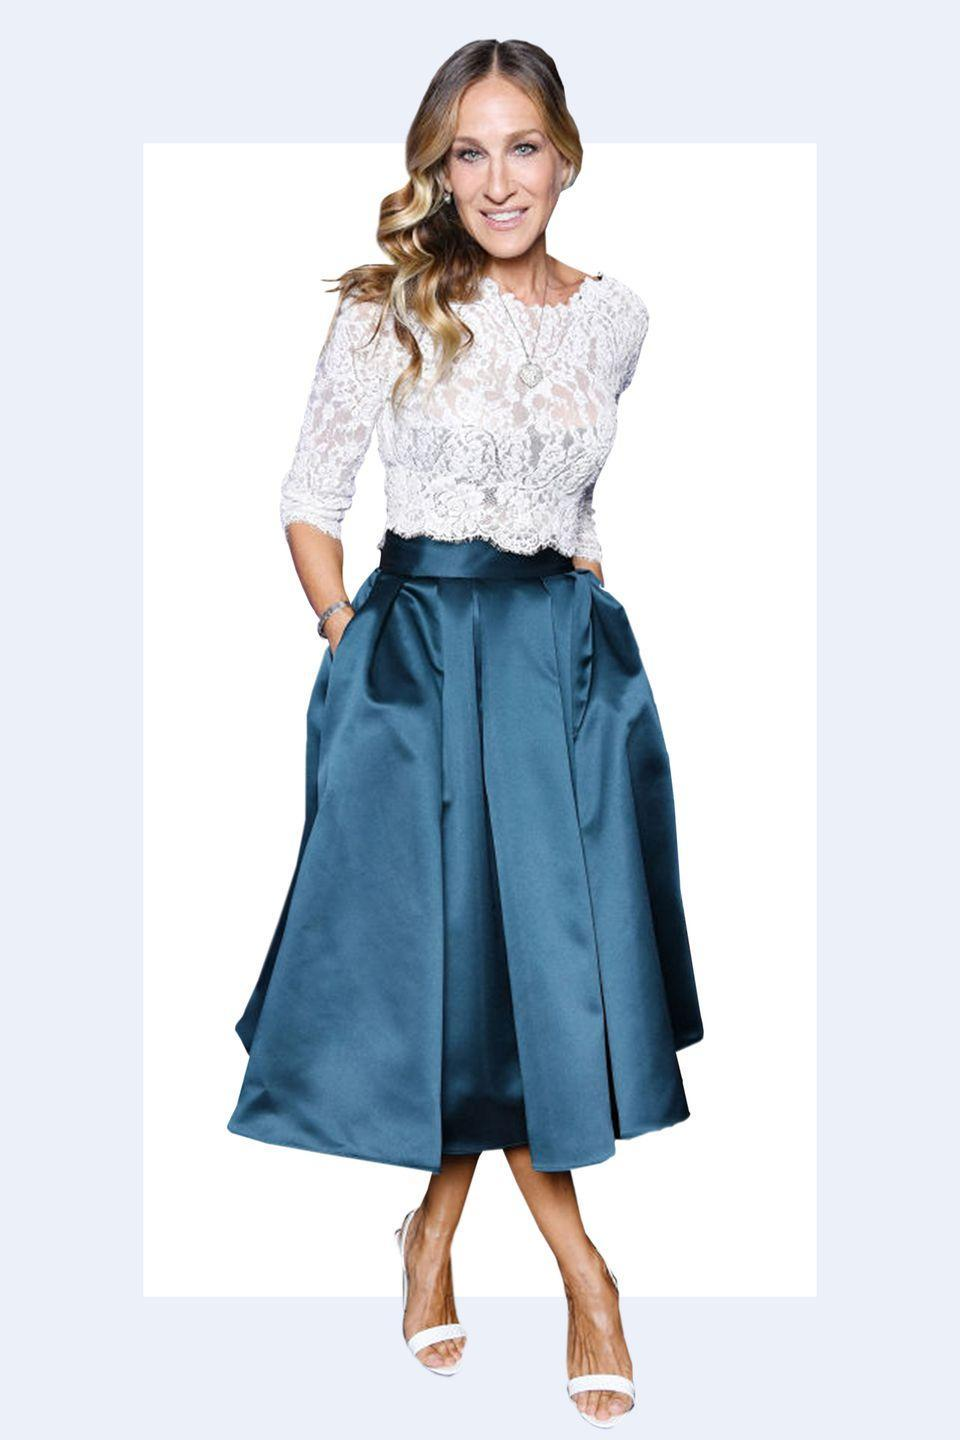 """<p>""""I think that after a certain age your skirt should really be at or below the knee, <strong>no matter how beautiful your legs are</strong>. It looks more appropriate and it doesn't look like you're trying to look young."""" -<em><a rel=""""nofollow noopener"""" href=""""https://www.studiocavaco.com/"""" target=""""_blank"""" data-ylk=""""slk:Paul Cavaco"""" class=""""link rapid-noclick-resp"""">Paul Cavaco</a></em></p>"""